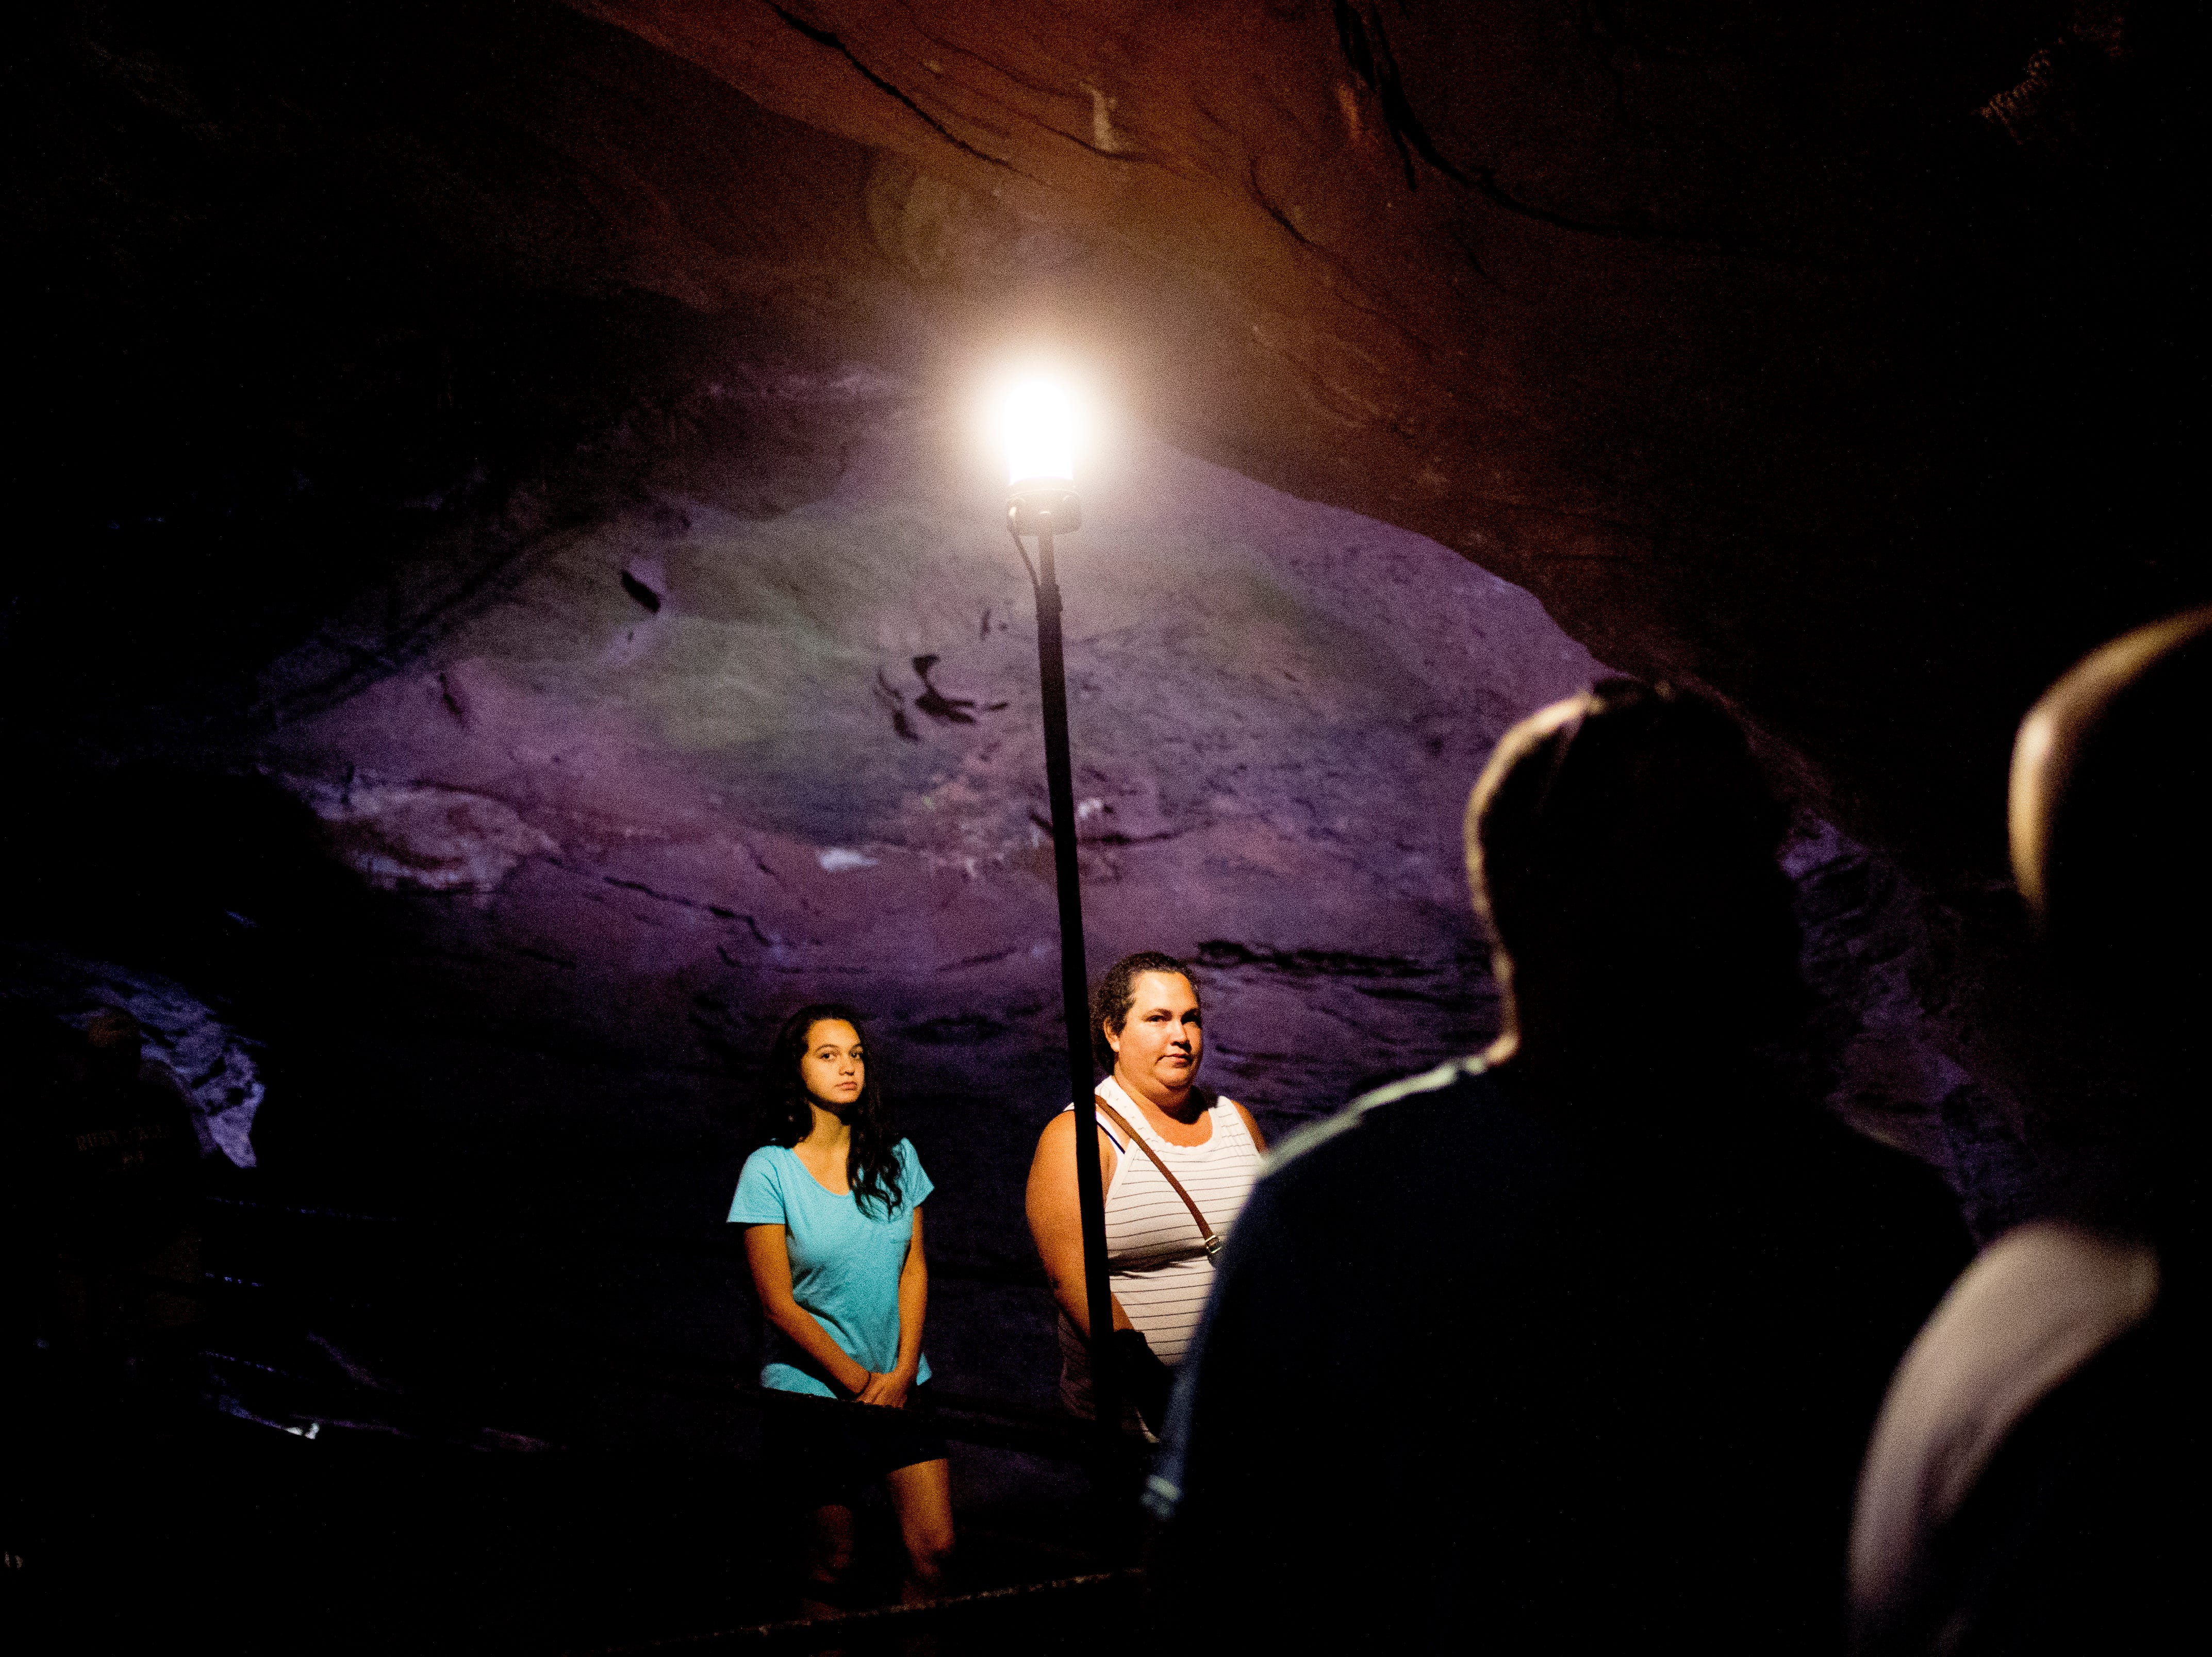 Visitors walk through the caves at the Lost Sea Adventure underground cave attraction outside of Sweetwater, Tennessee on Wednesday, August 15, 2018. The cave system dates back some 20,000 years and today features points of interests like an old moonshine still, rock formations, Confederate Army graffiti and the popular boat ride in a natural lake stocked with 200 rainbow trout.